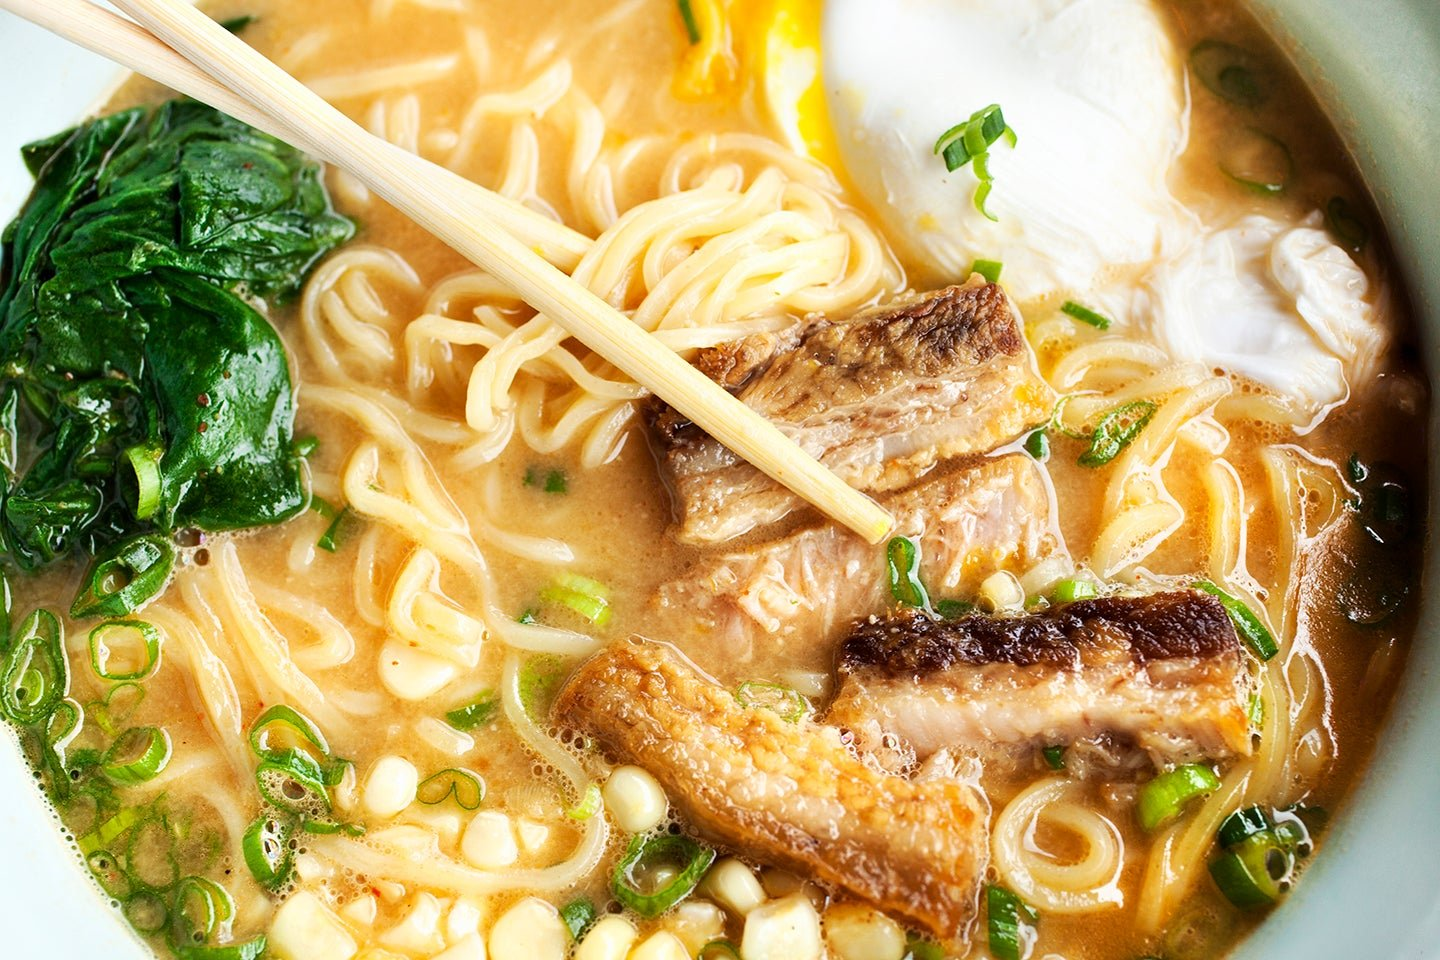 The Best Ramen Noodles for Carby Comfort in an Instant